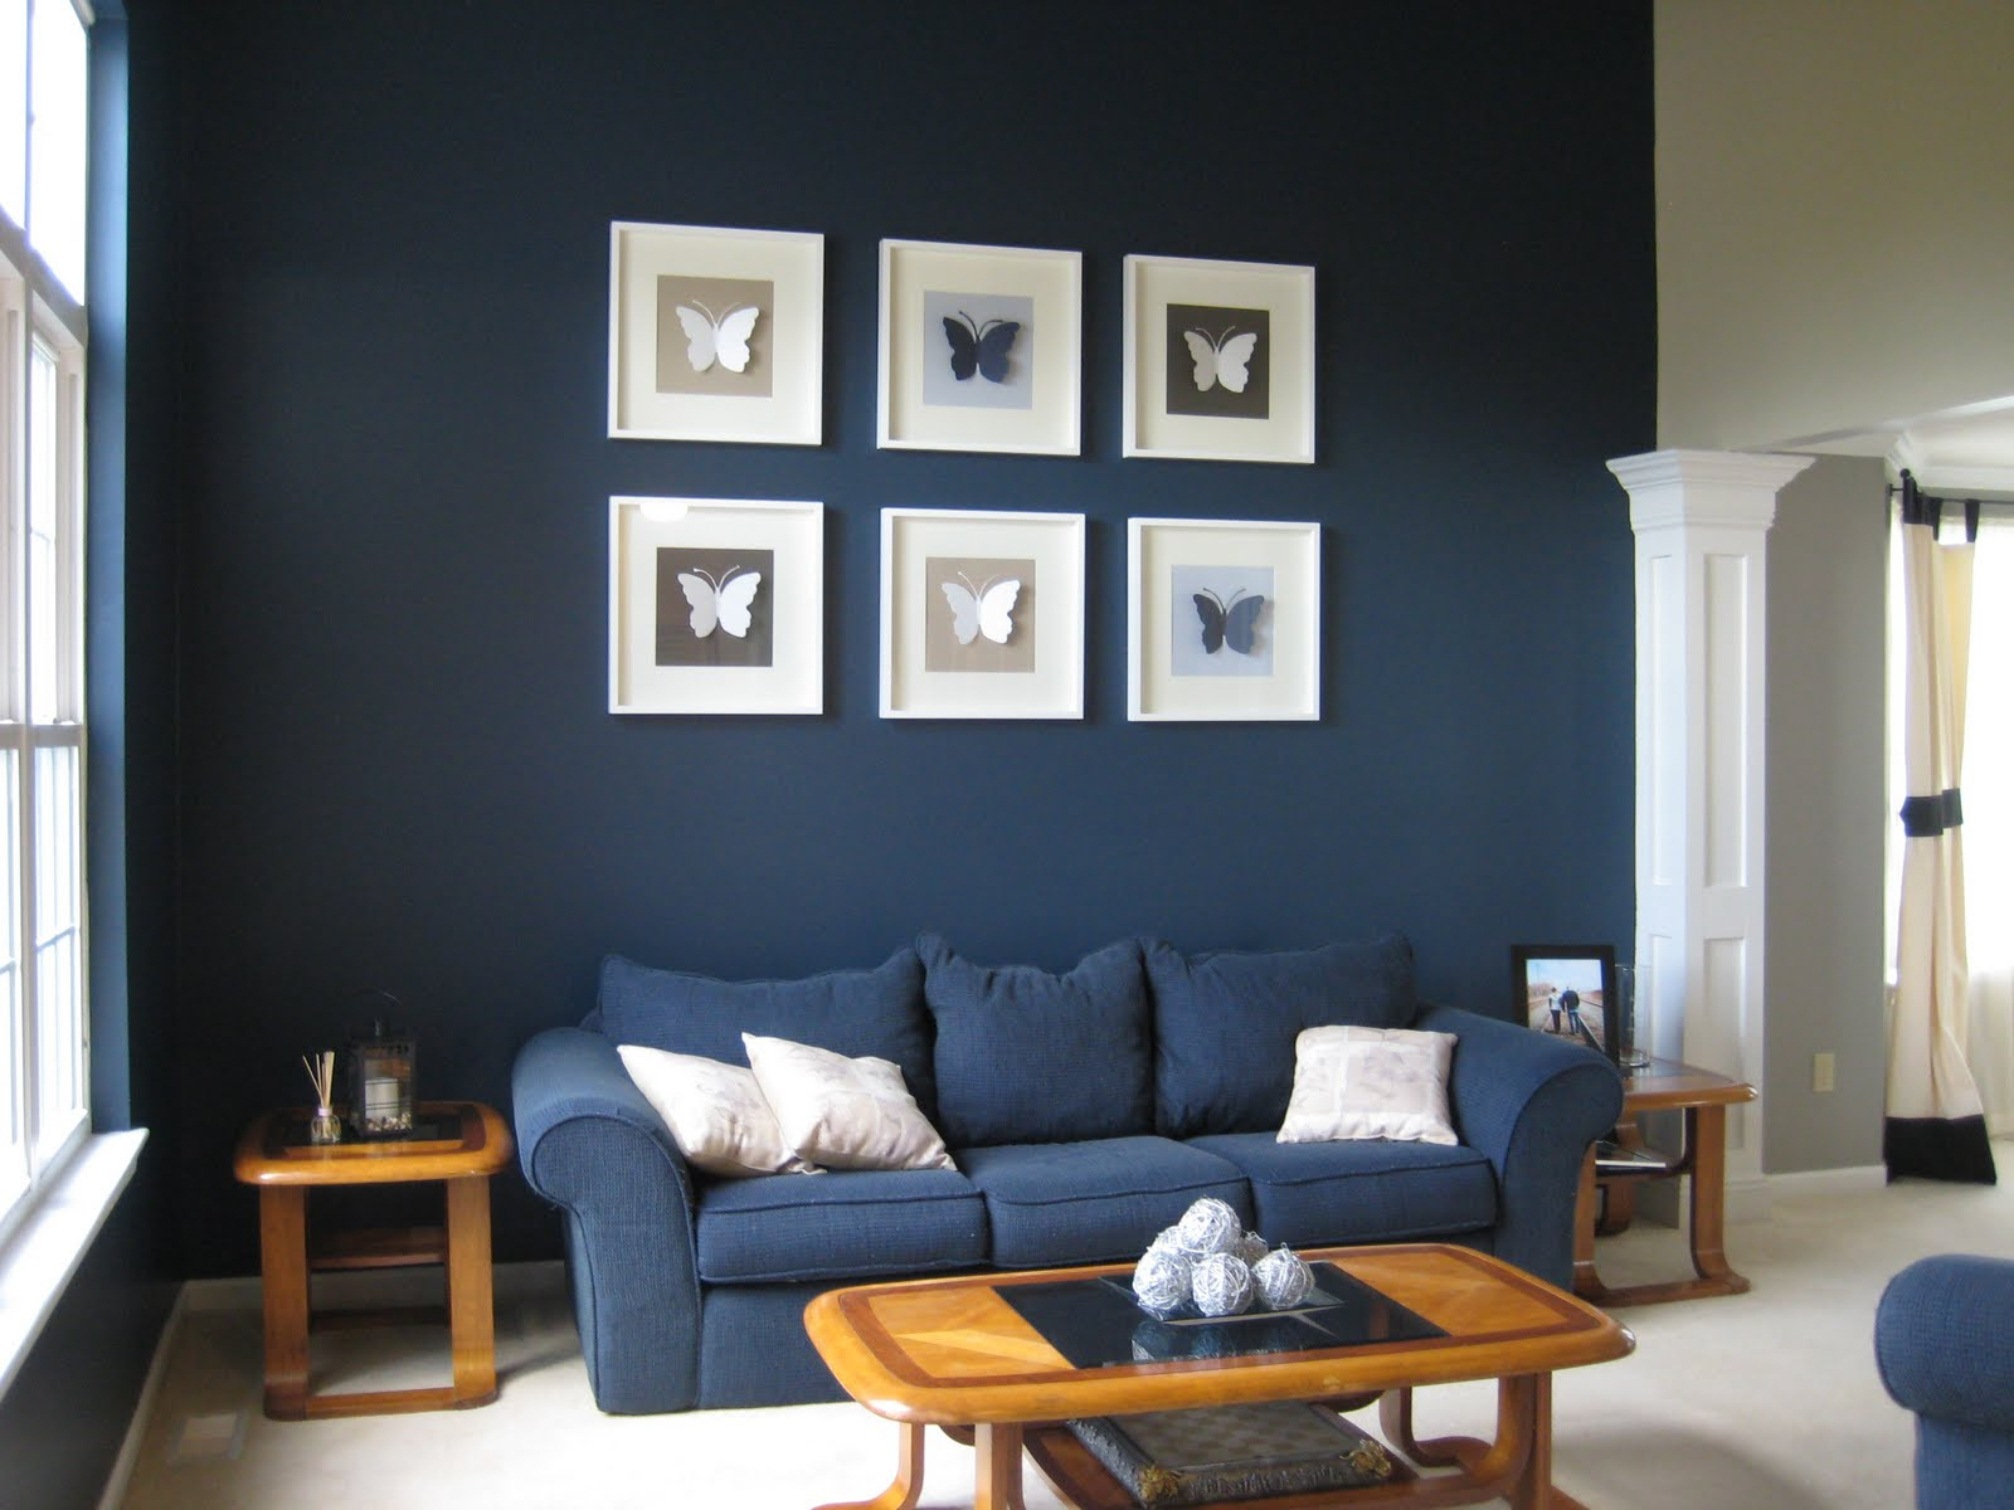 Room of the week apartments i like blog for Blue wall art for living room